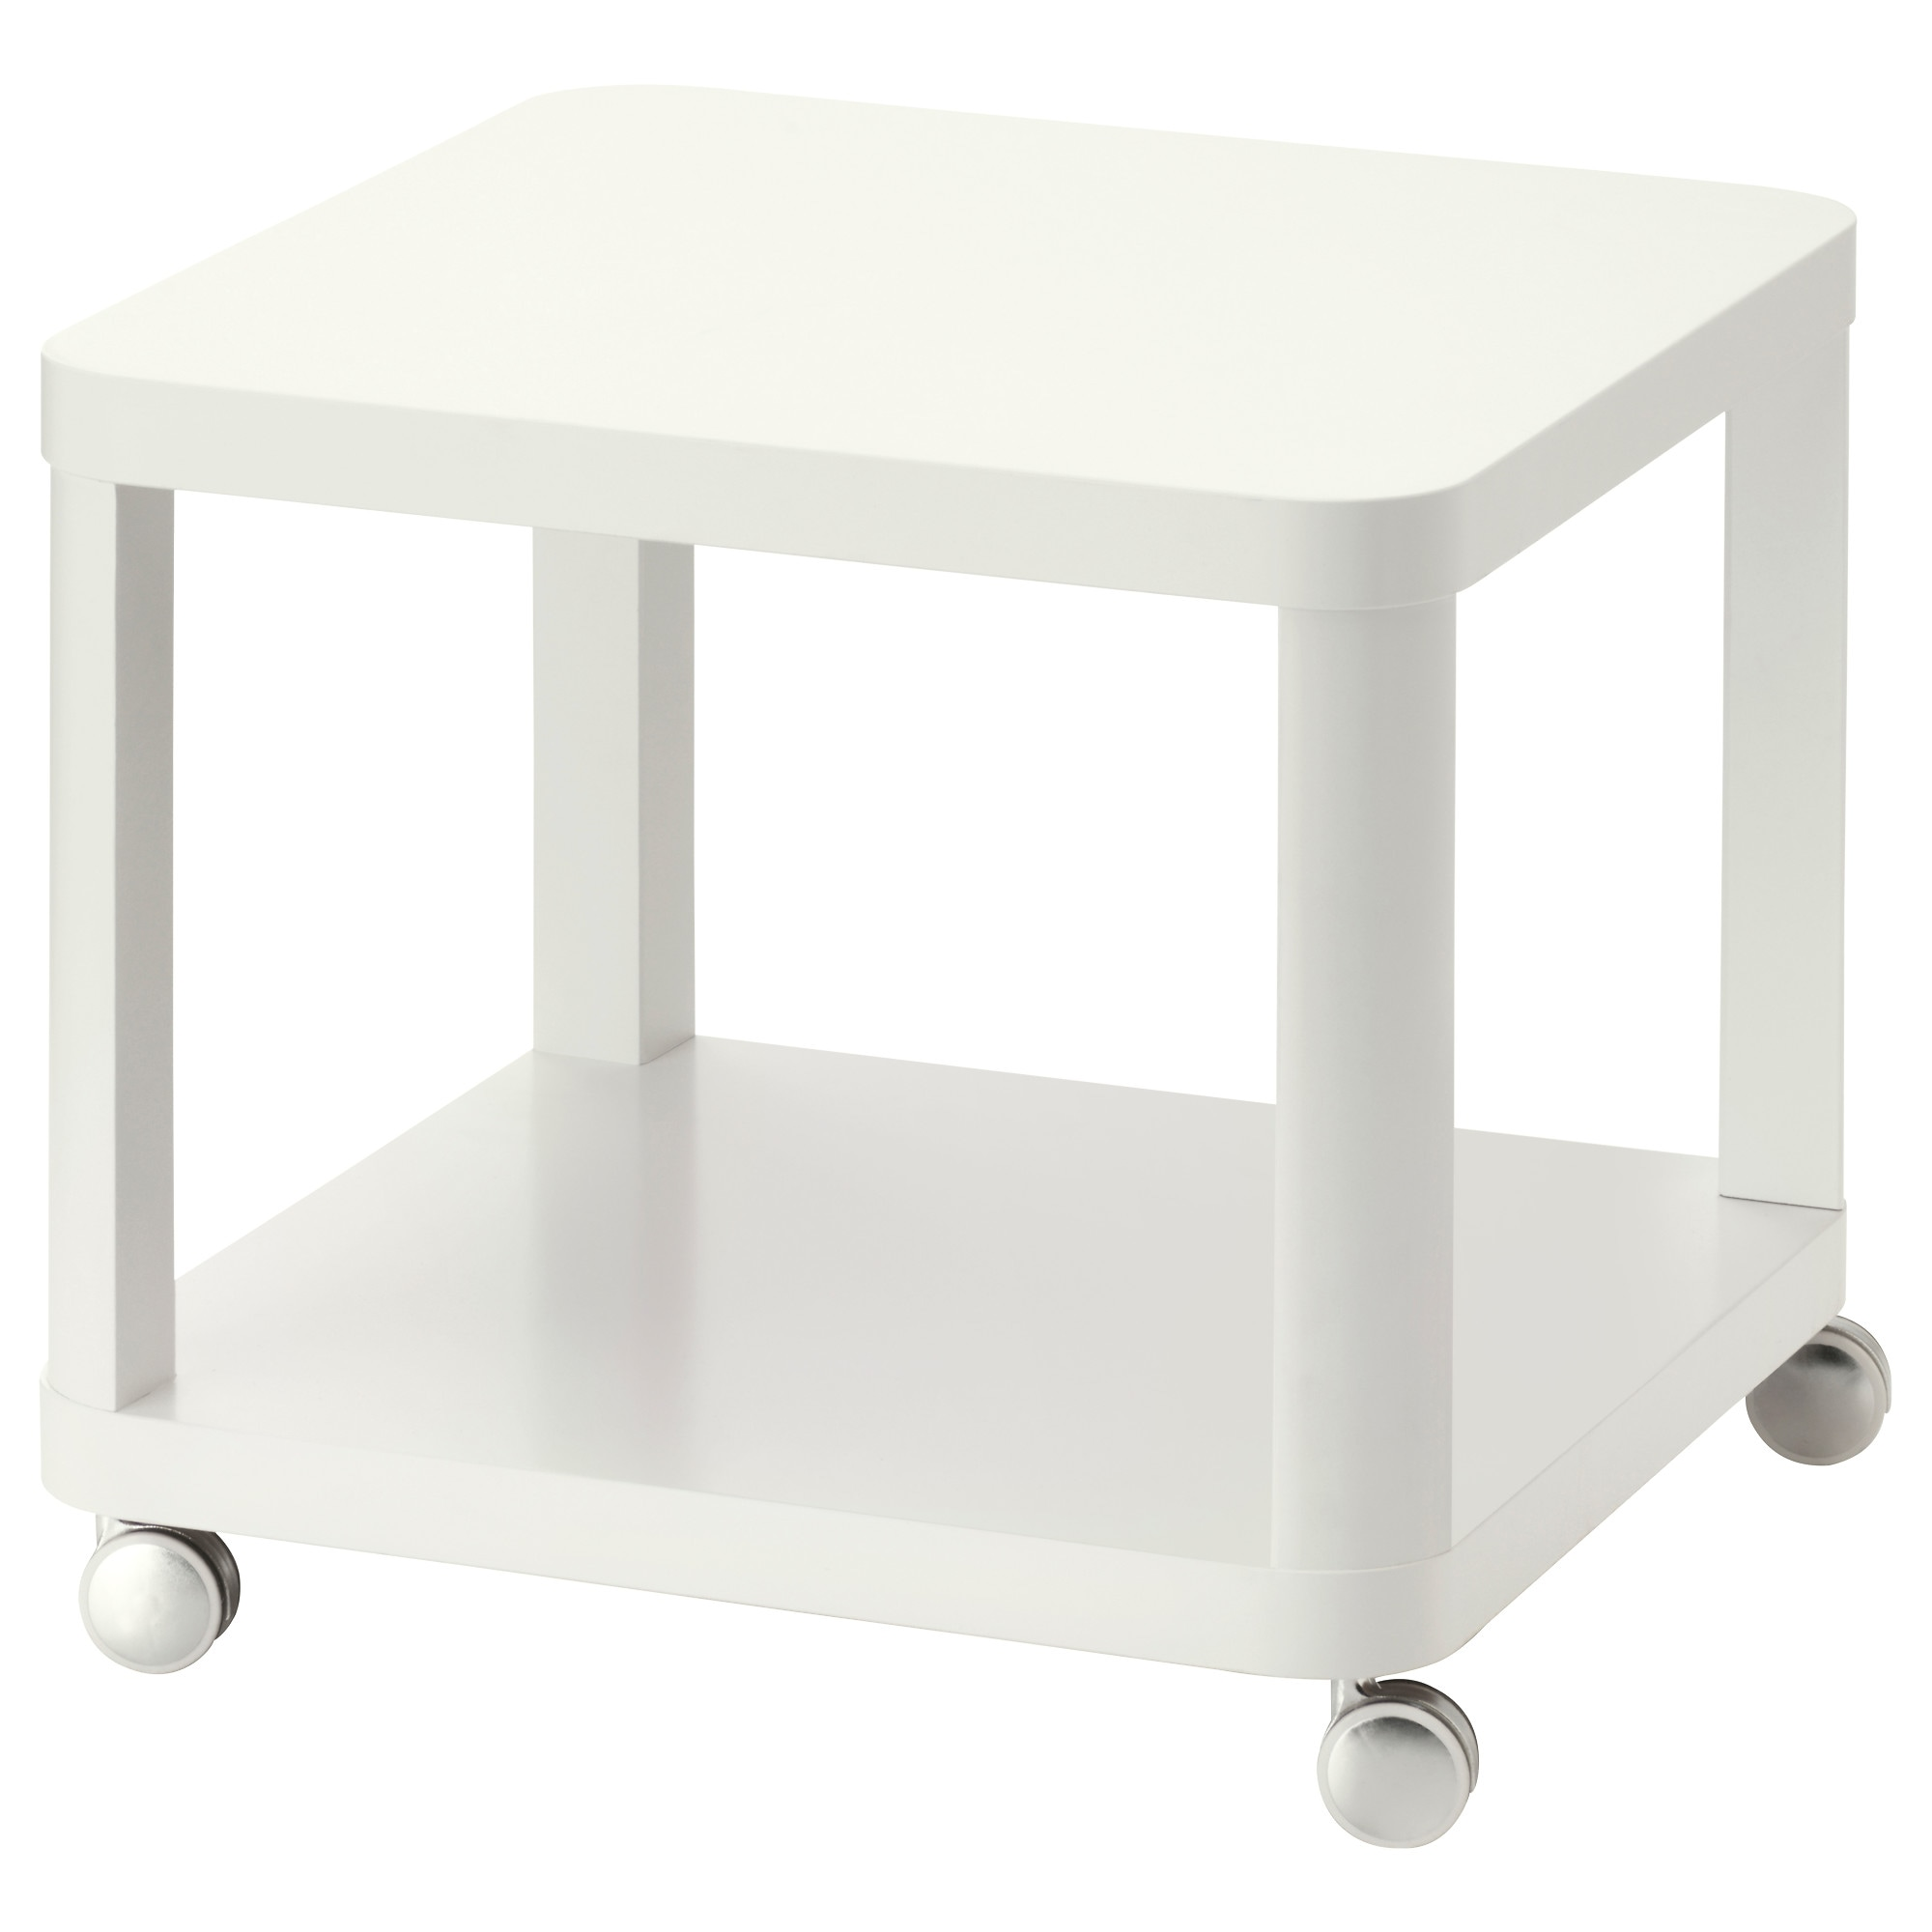 TINGBY Side table on casters white IKEA